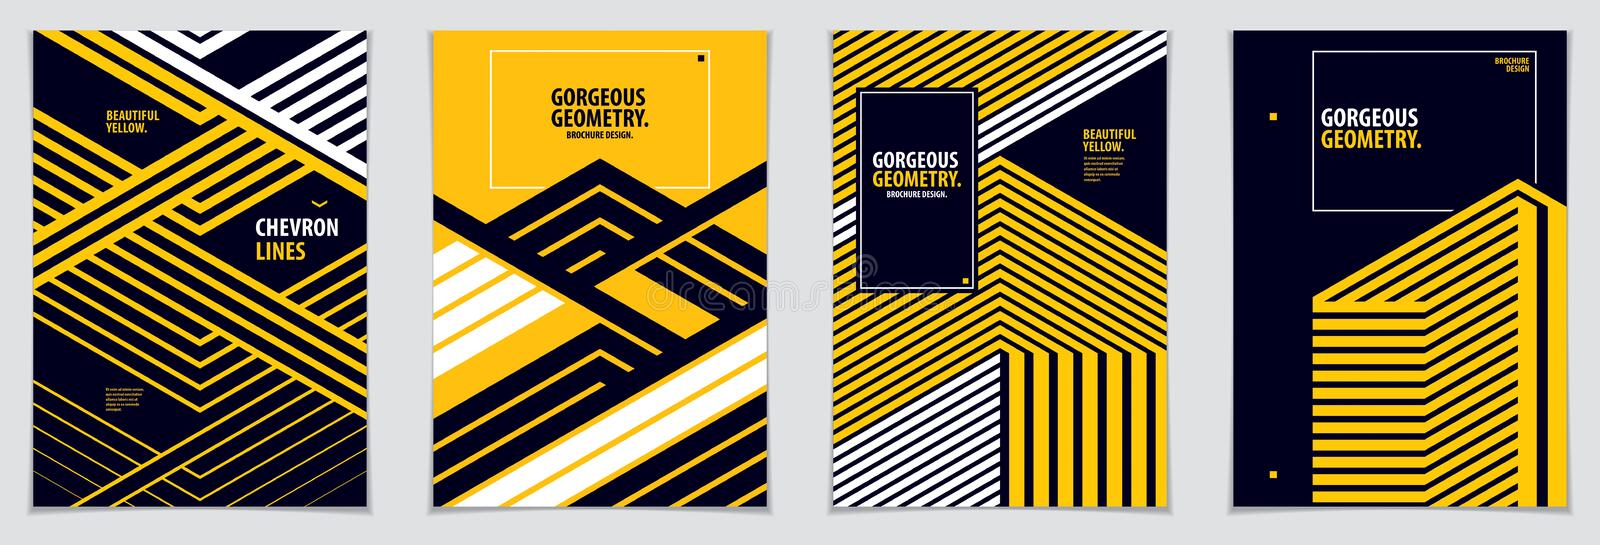 Minimal covers design. Vector set geometric patterns abstract backgrounds collection. Design templates for flyers, booklets, vector illustration